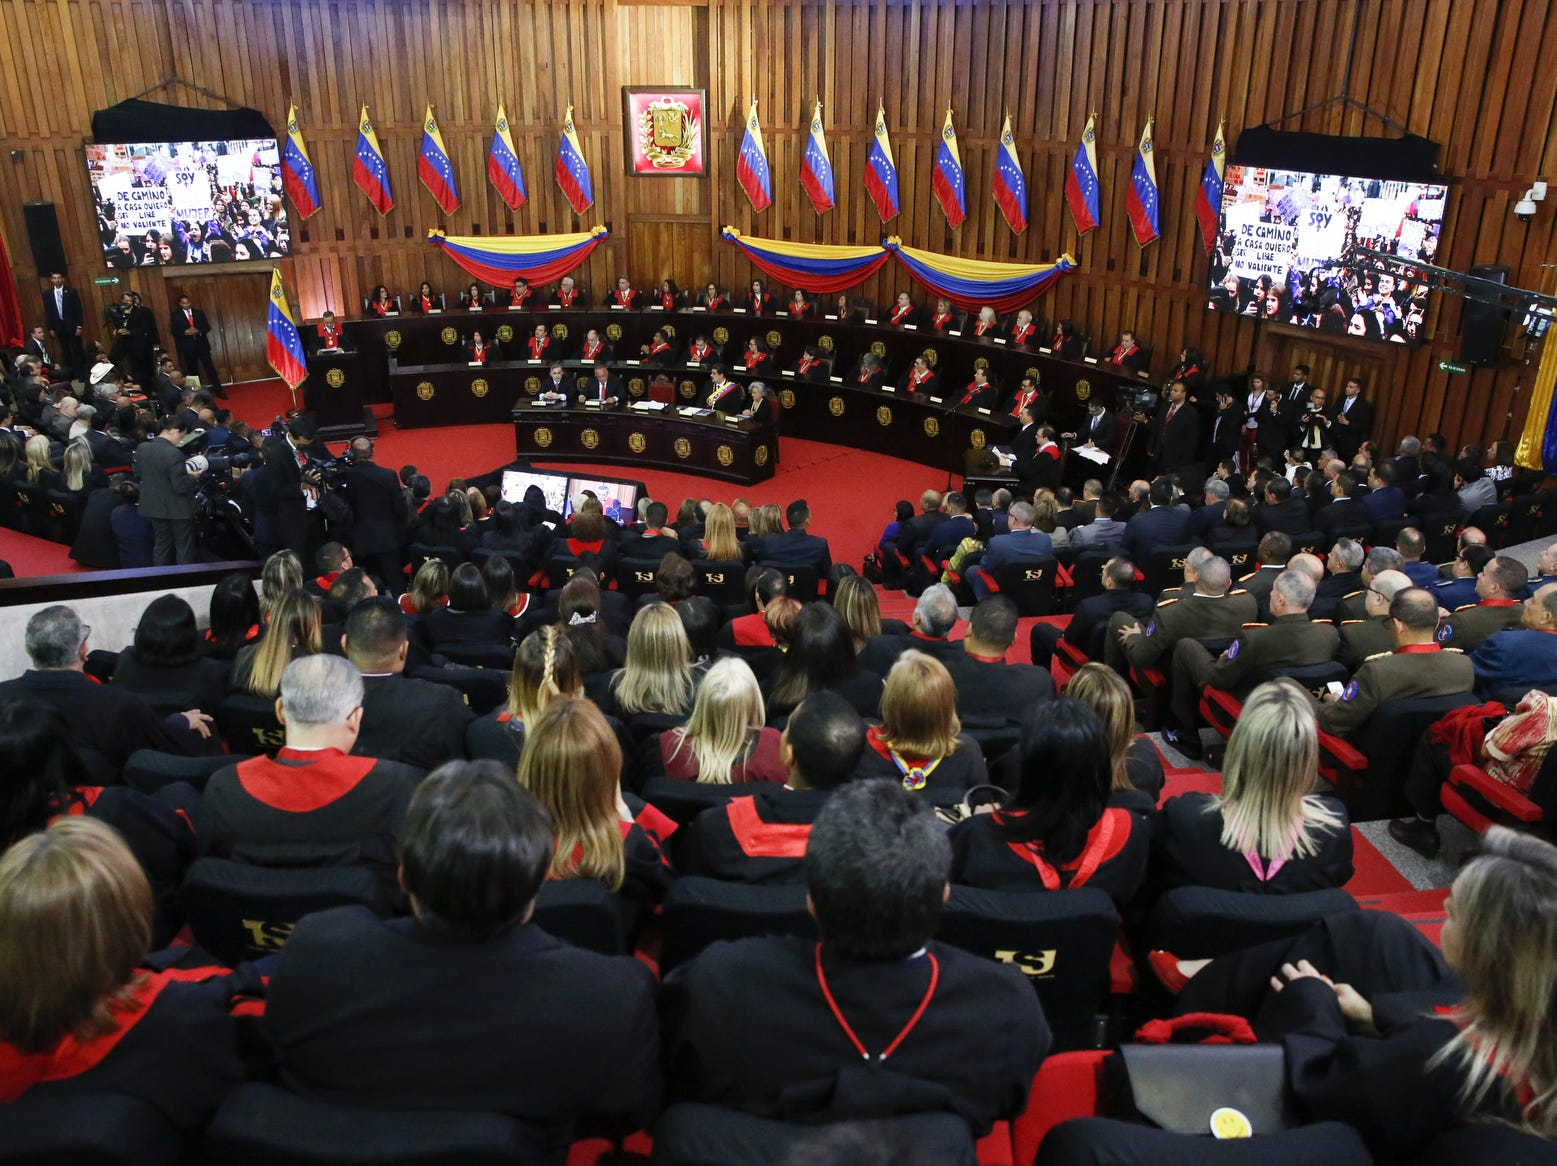 General view of the Supreme Justice Tribunal of Venezuela before the speech of Nicolás Maduro on the annual opening day of sessions in Caracas, Venezuela. Several countries including US, France and Brazil accepted Guaidó as the legitimate temporary ruler of the country. In response, Nicolás Maduro urged American diplomats to leave Venezuela in 72 hours breaking diplomatic relationships.